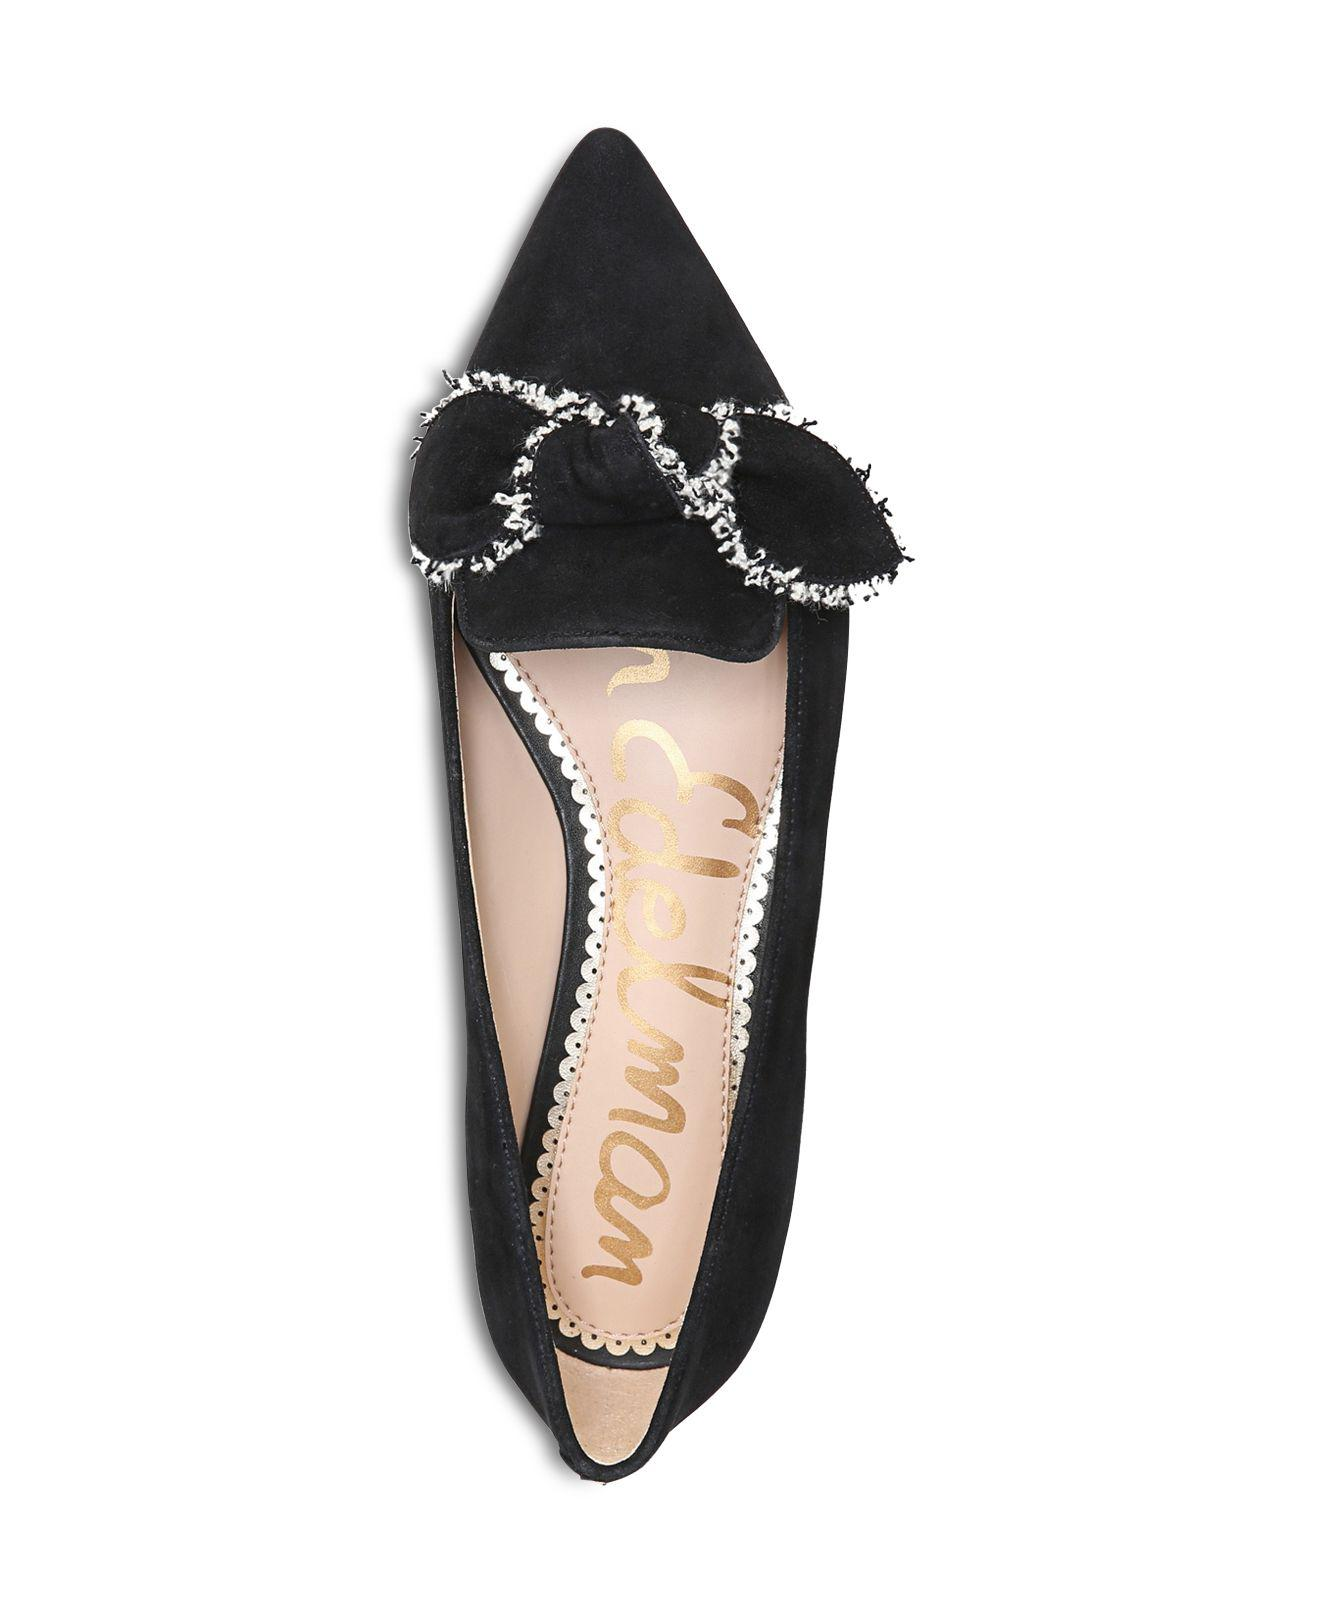 be2006f03 Lyst - Sam Edelman Rochester Suede Pointed Toe Bow Flats in Black